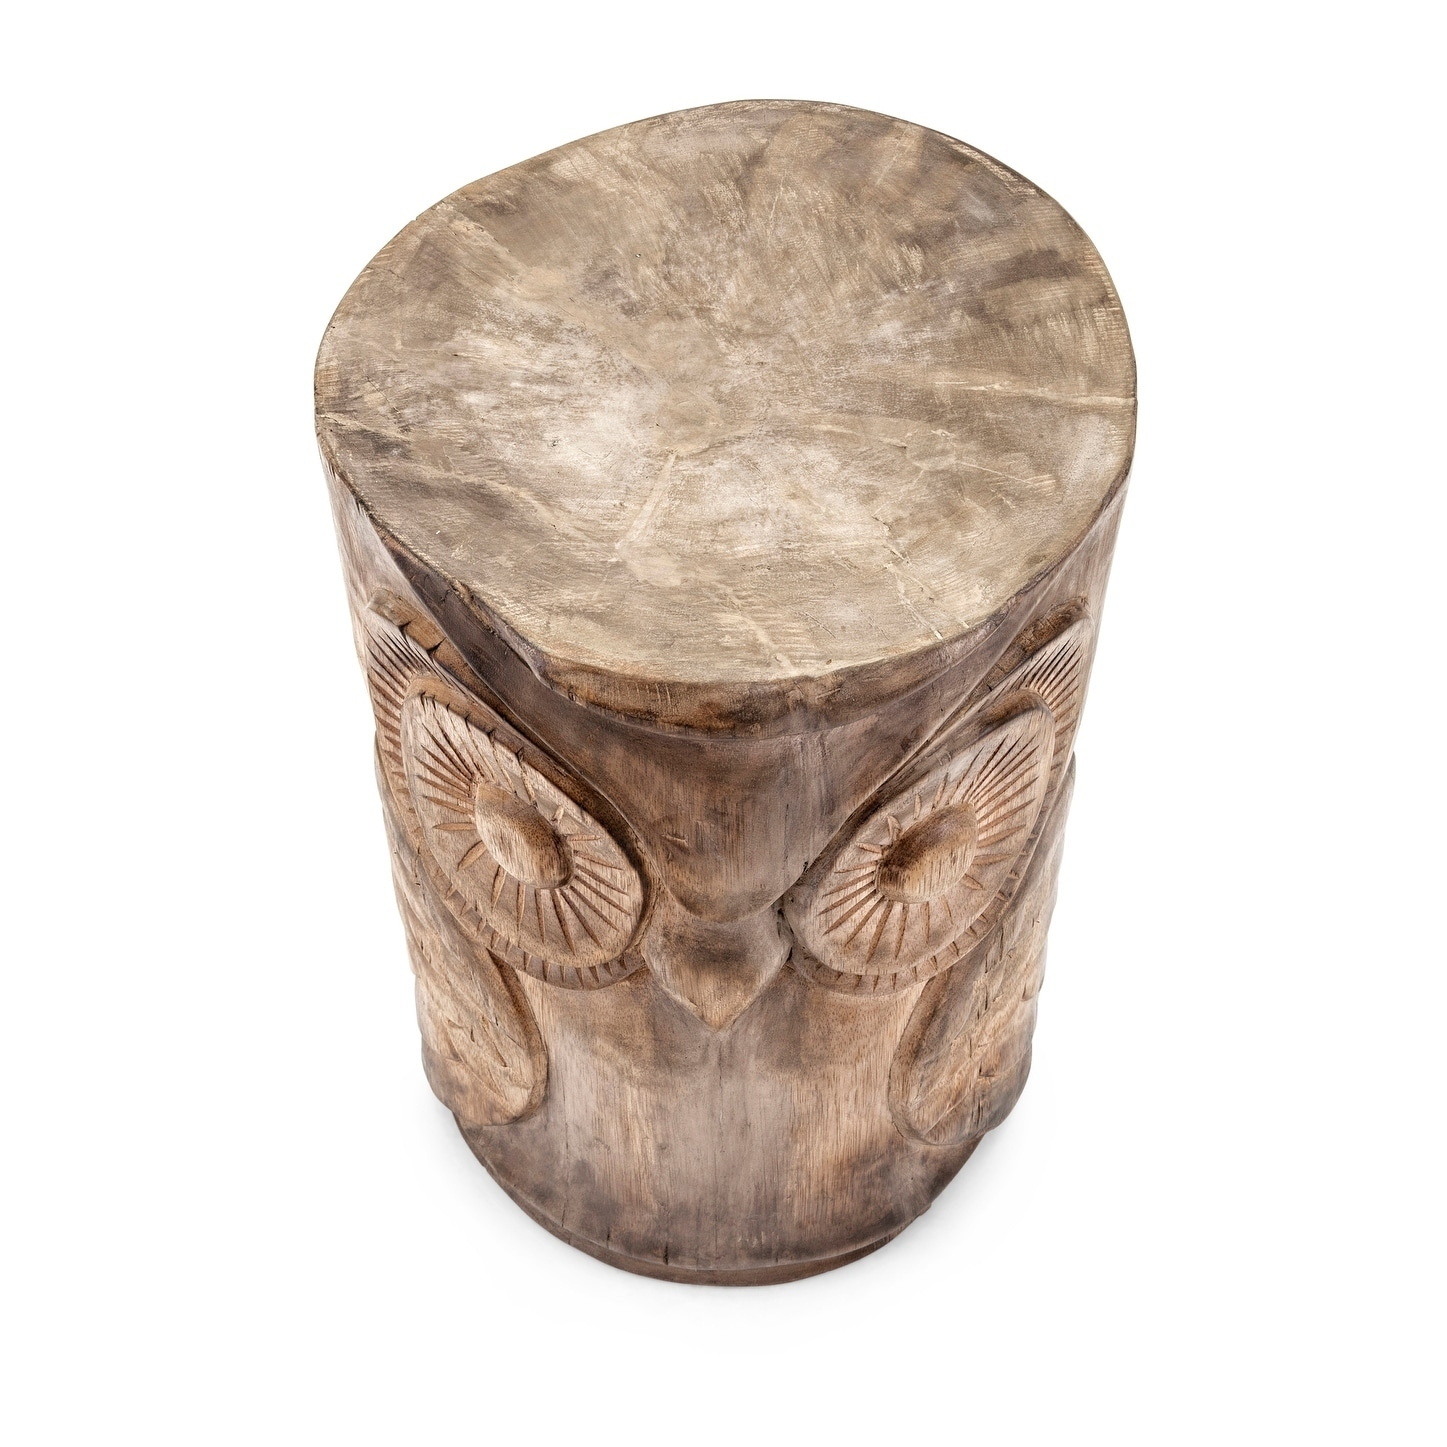 wooden owl my category archives stool store image thrift decor treasures wood